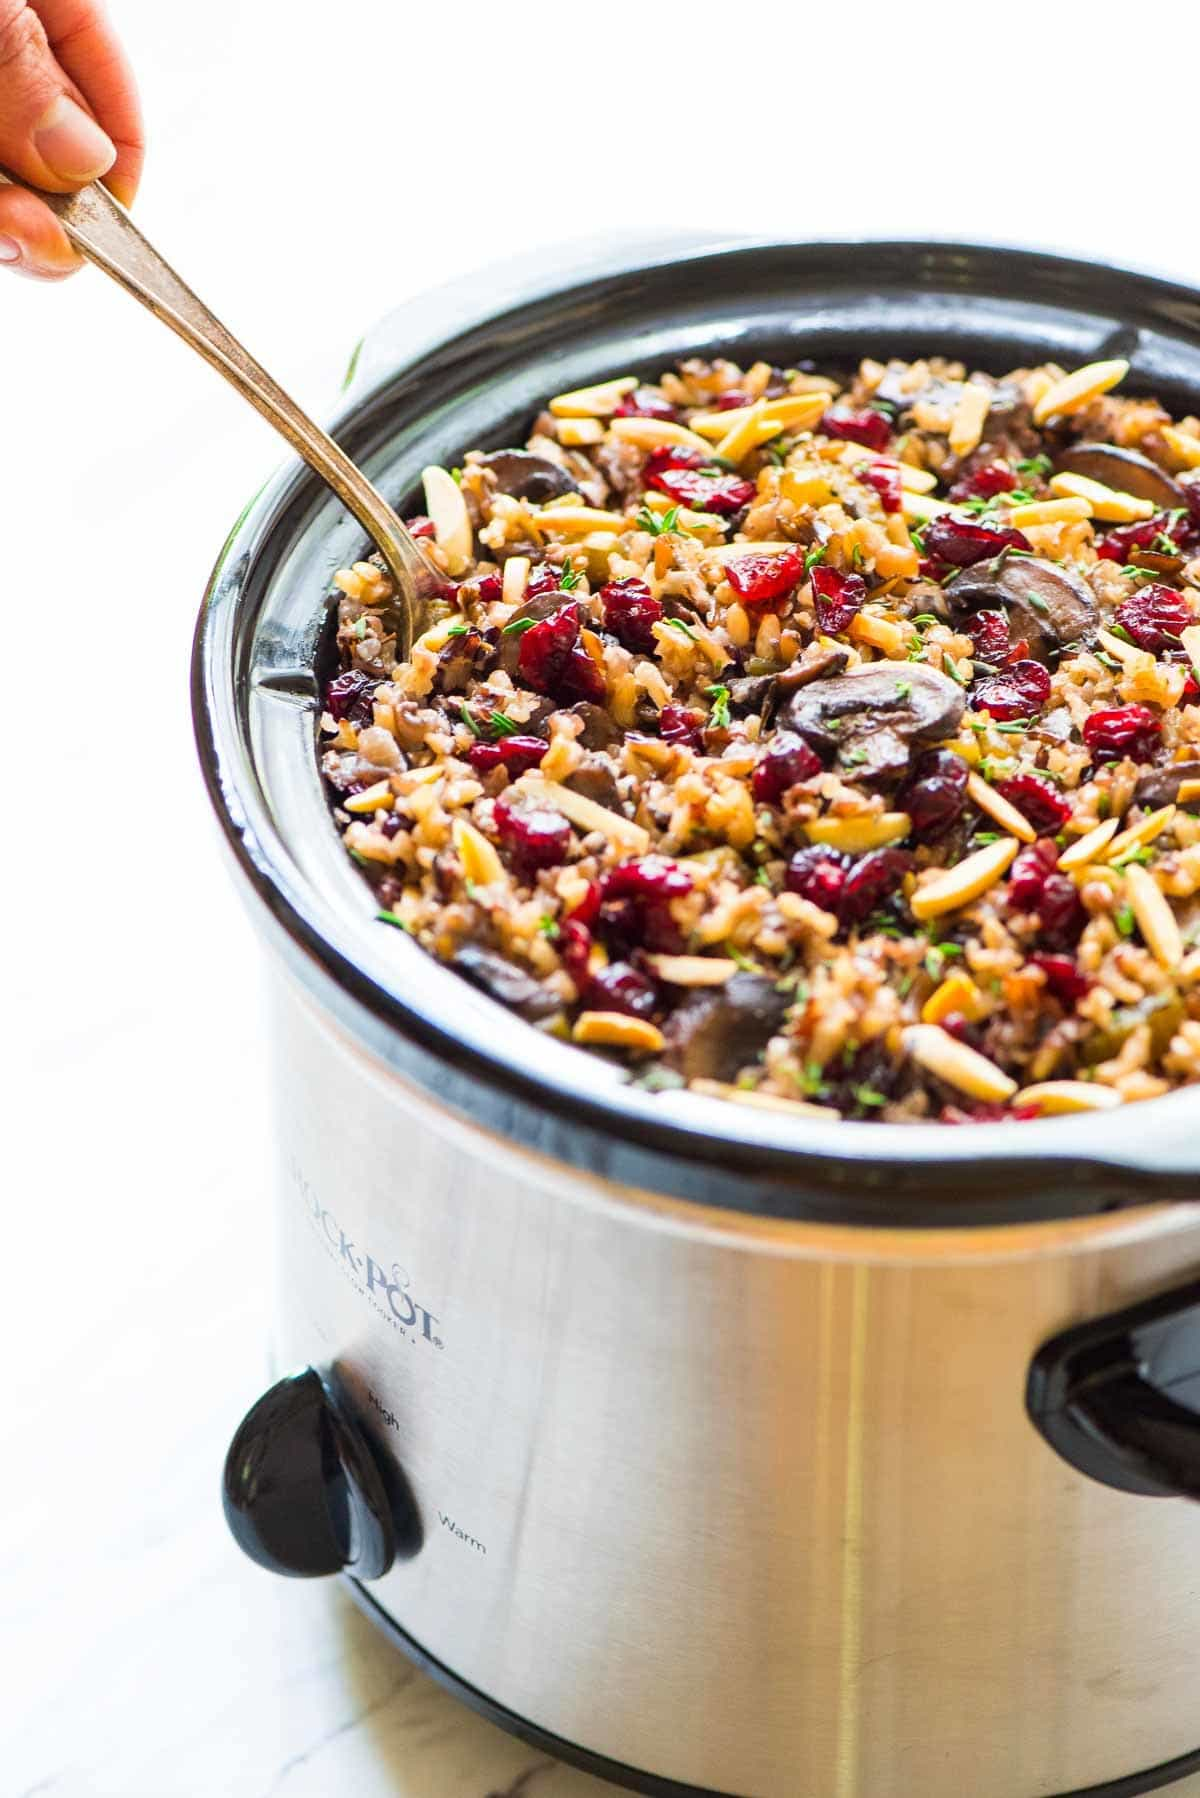 Crockpot wild rice stuffing with mushrooms